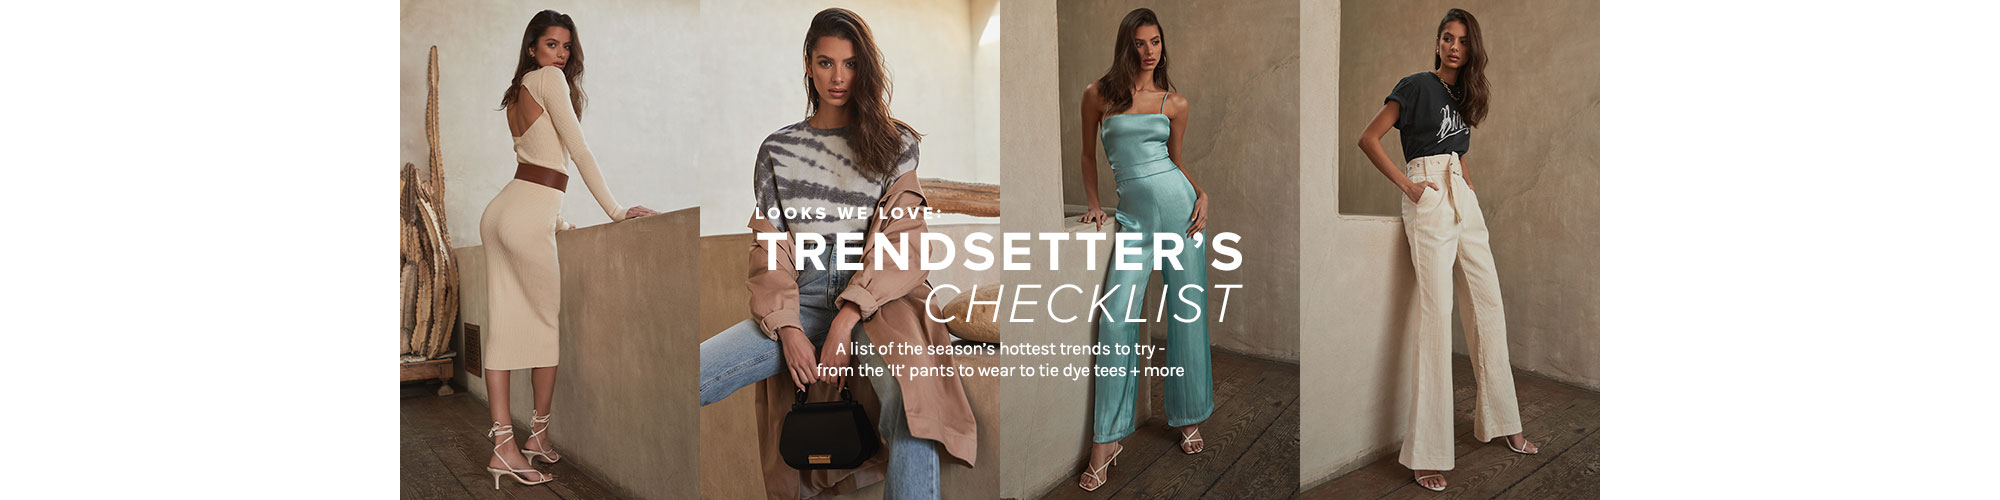 Look We Love: Trendsetter\'s Checklist. A list of the season\u2019s hottest trends to try - from the \'It\' pants to wear to tie dye tees + more. SHOP THE EDIT